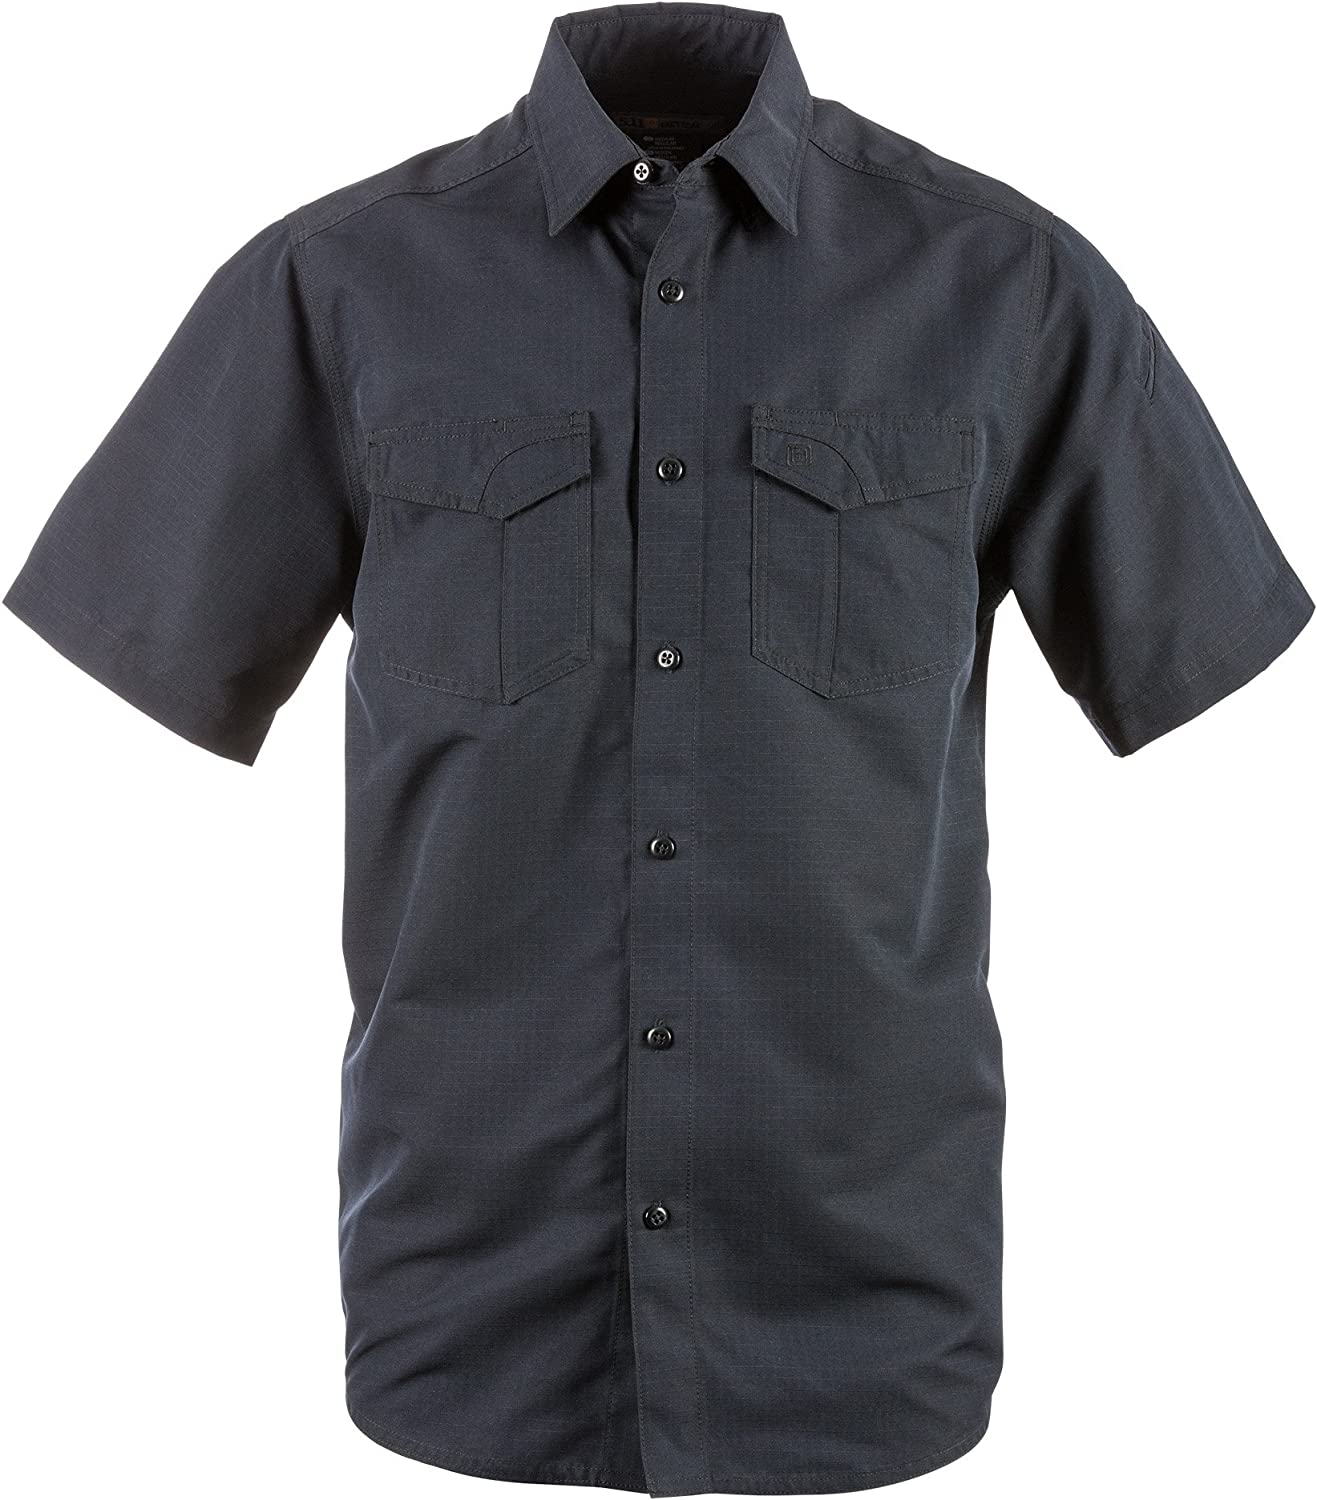 5.11 Tactical Fast-Tac Tall Short-Sleeve Shirt Dark Navy 4-x-Large